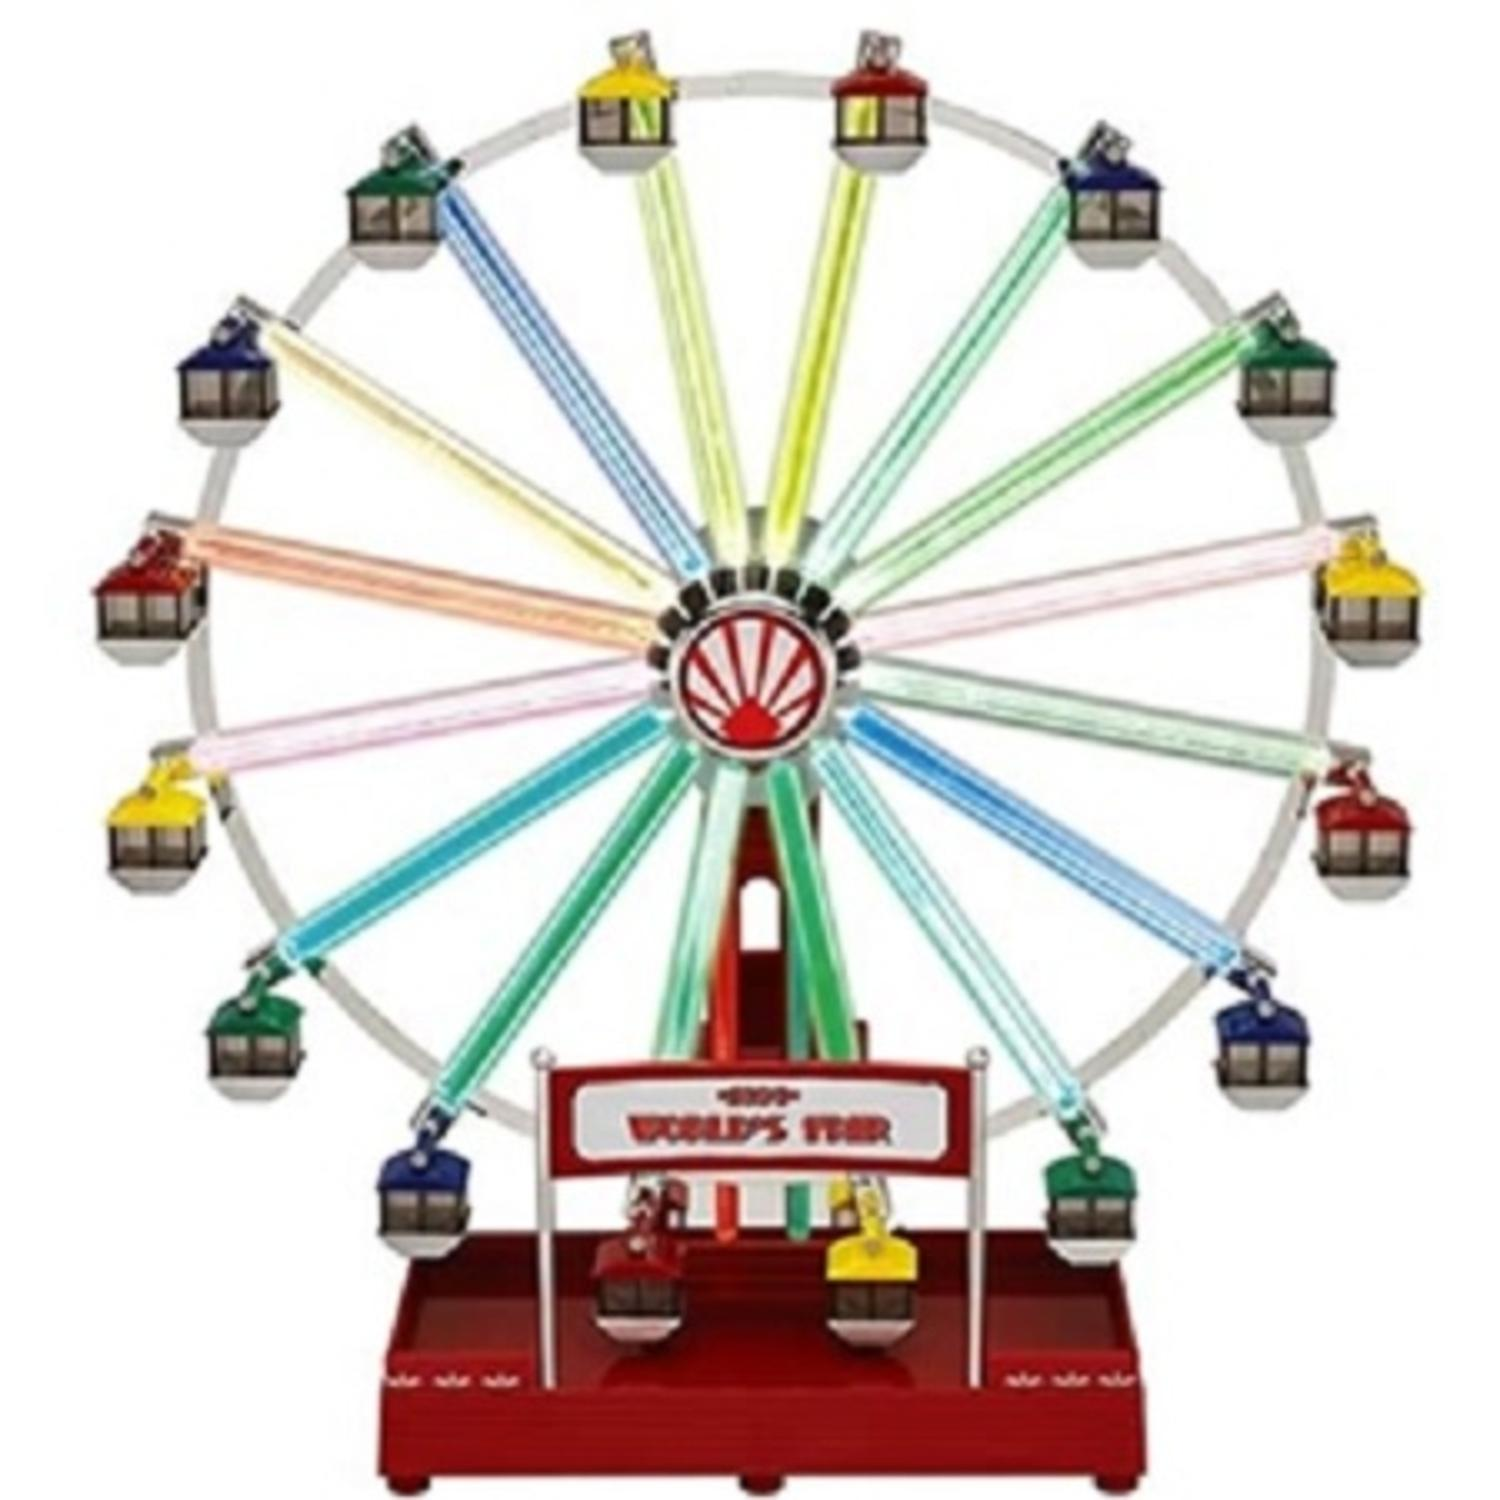 mr christmas animated musical led 1939 worlds fair ferris wheel decoration 79799 - Christmas Ferris Wheel Decoration